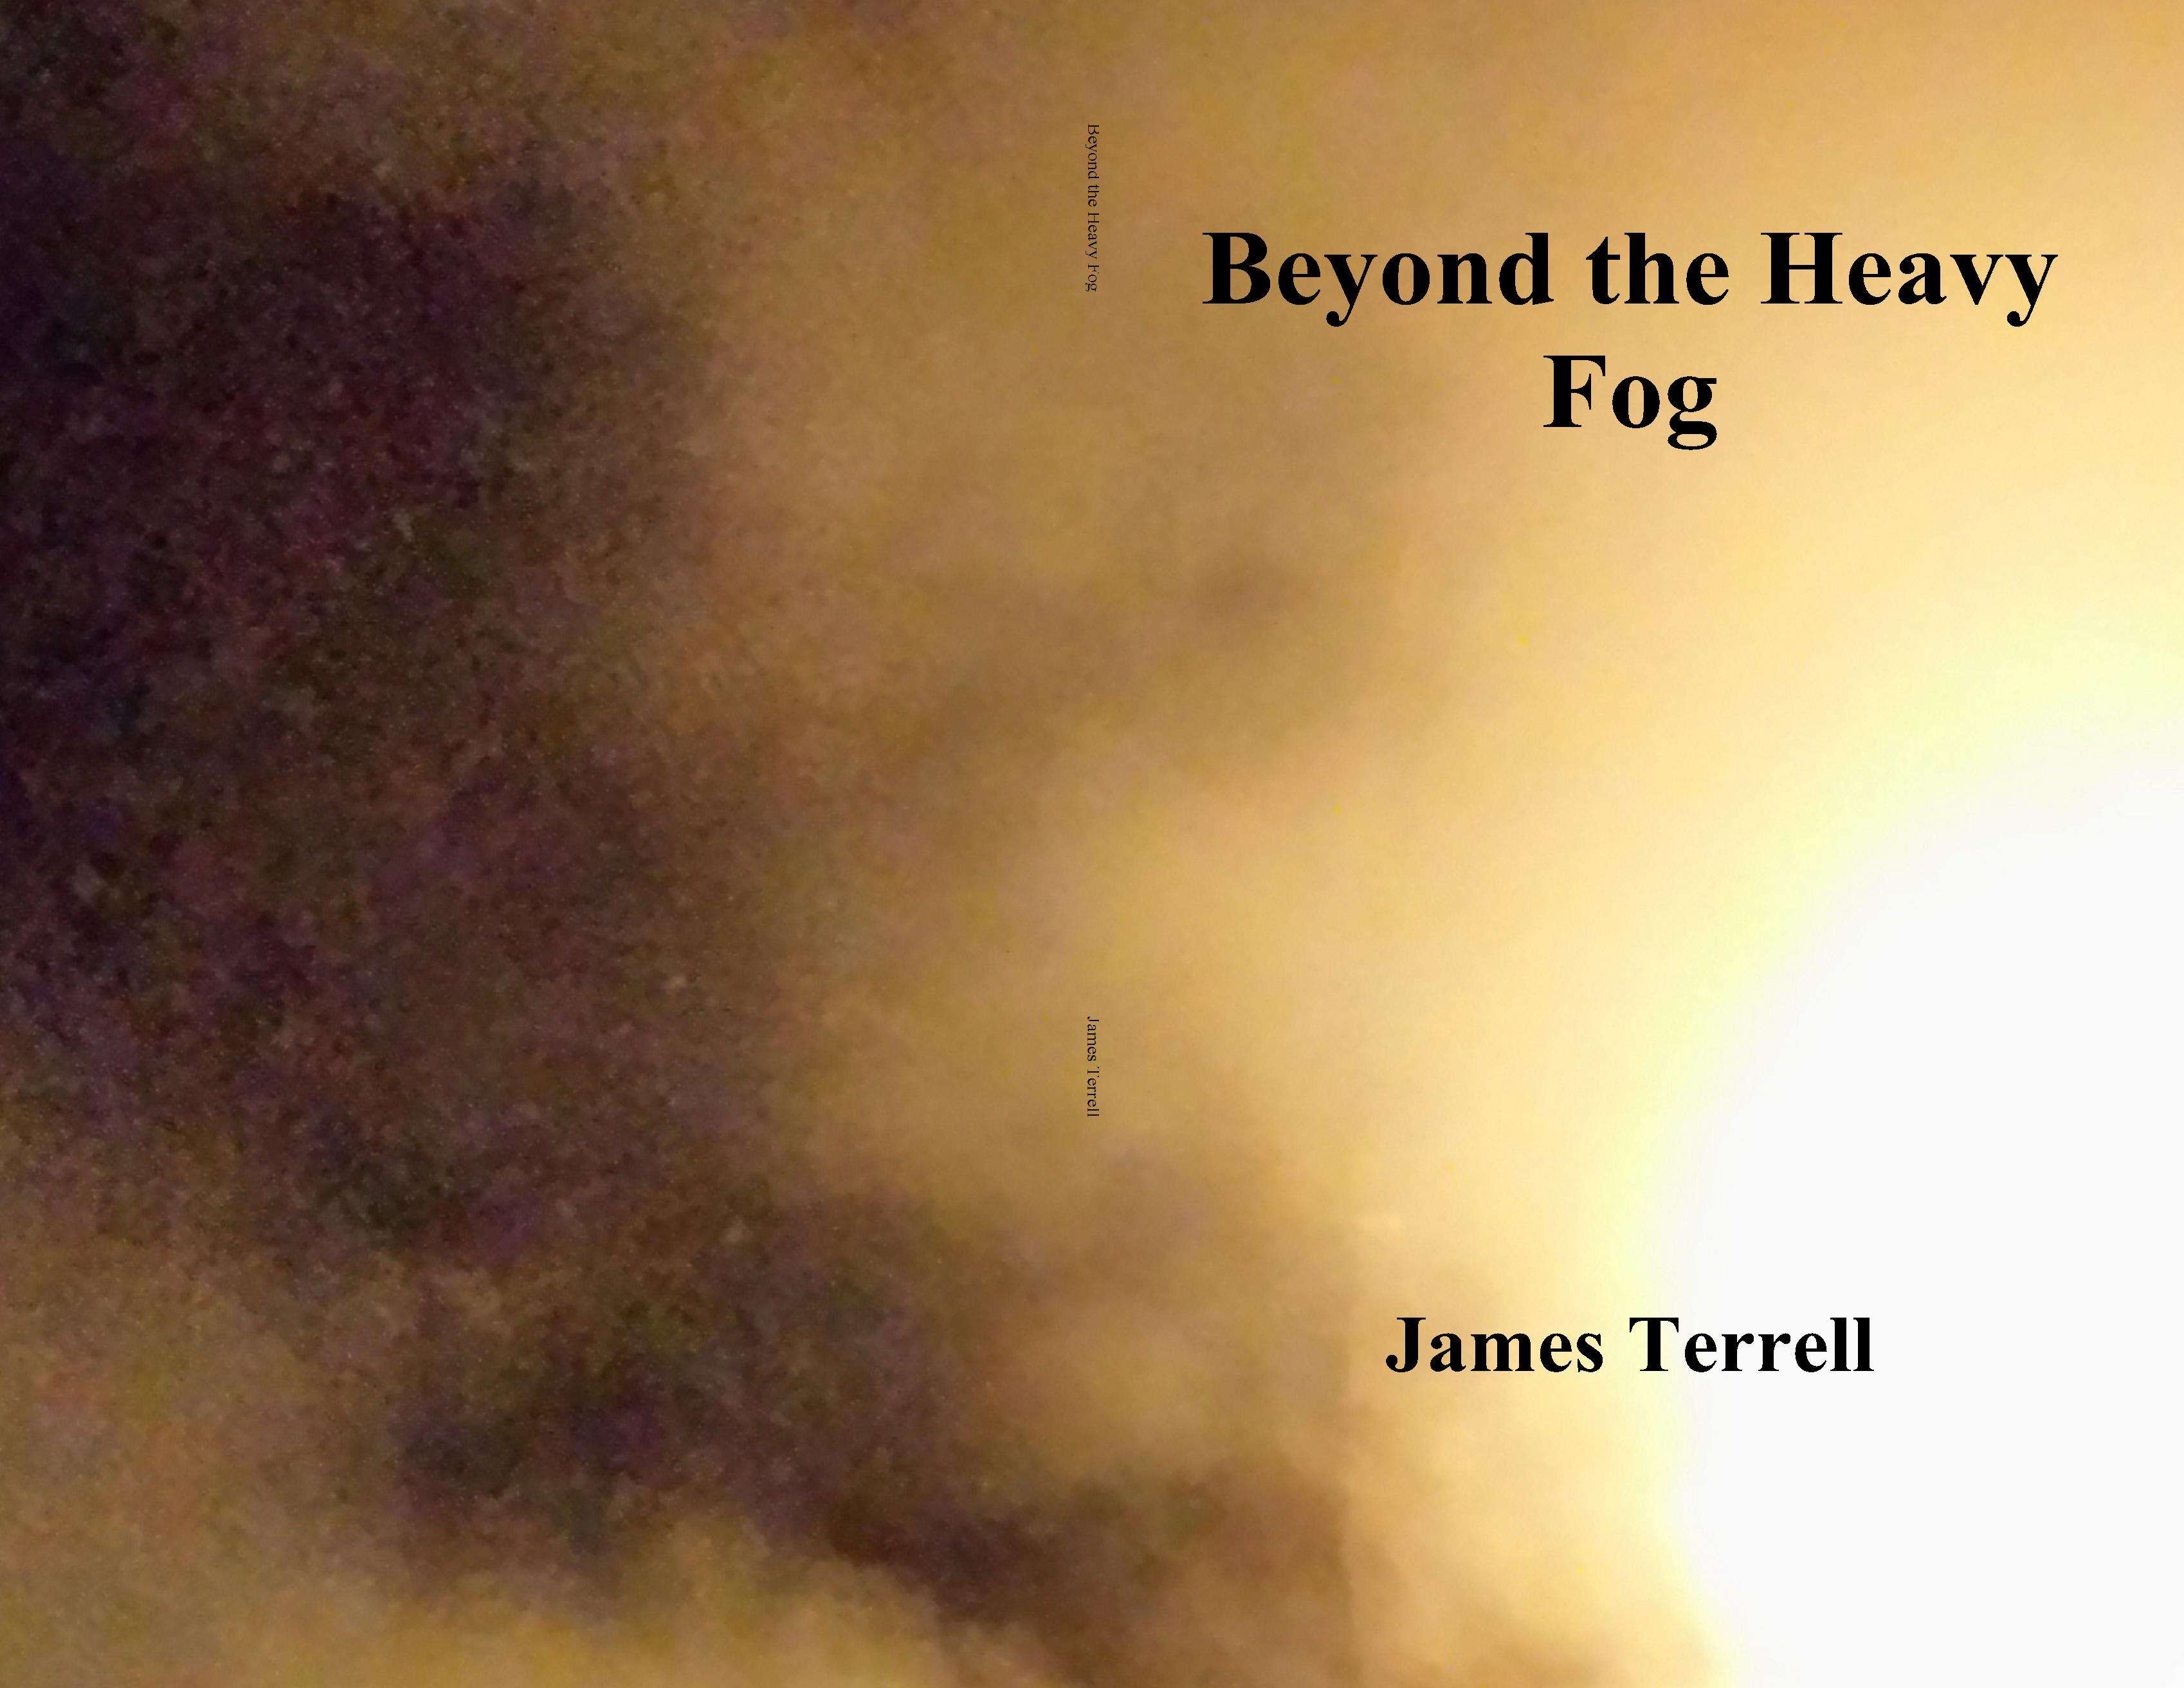 Beyond the Heavy Fog cover image